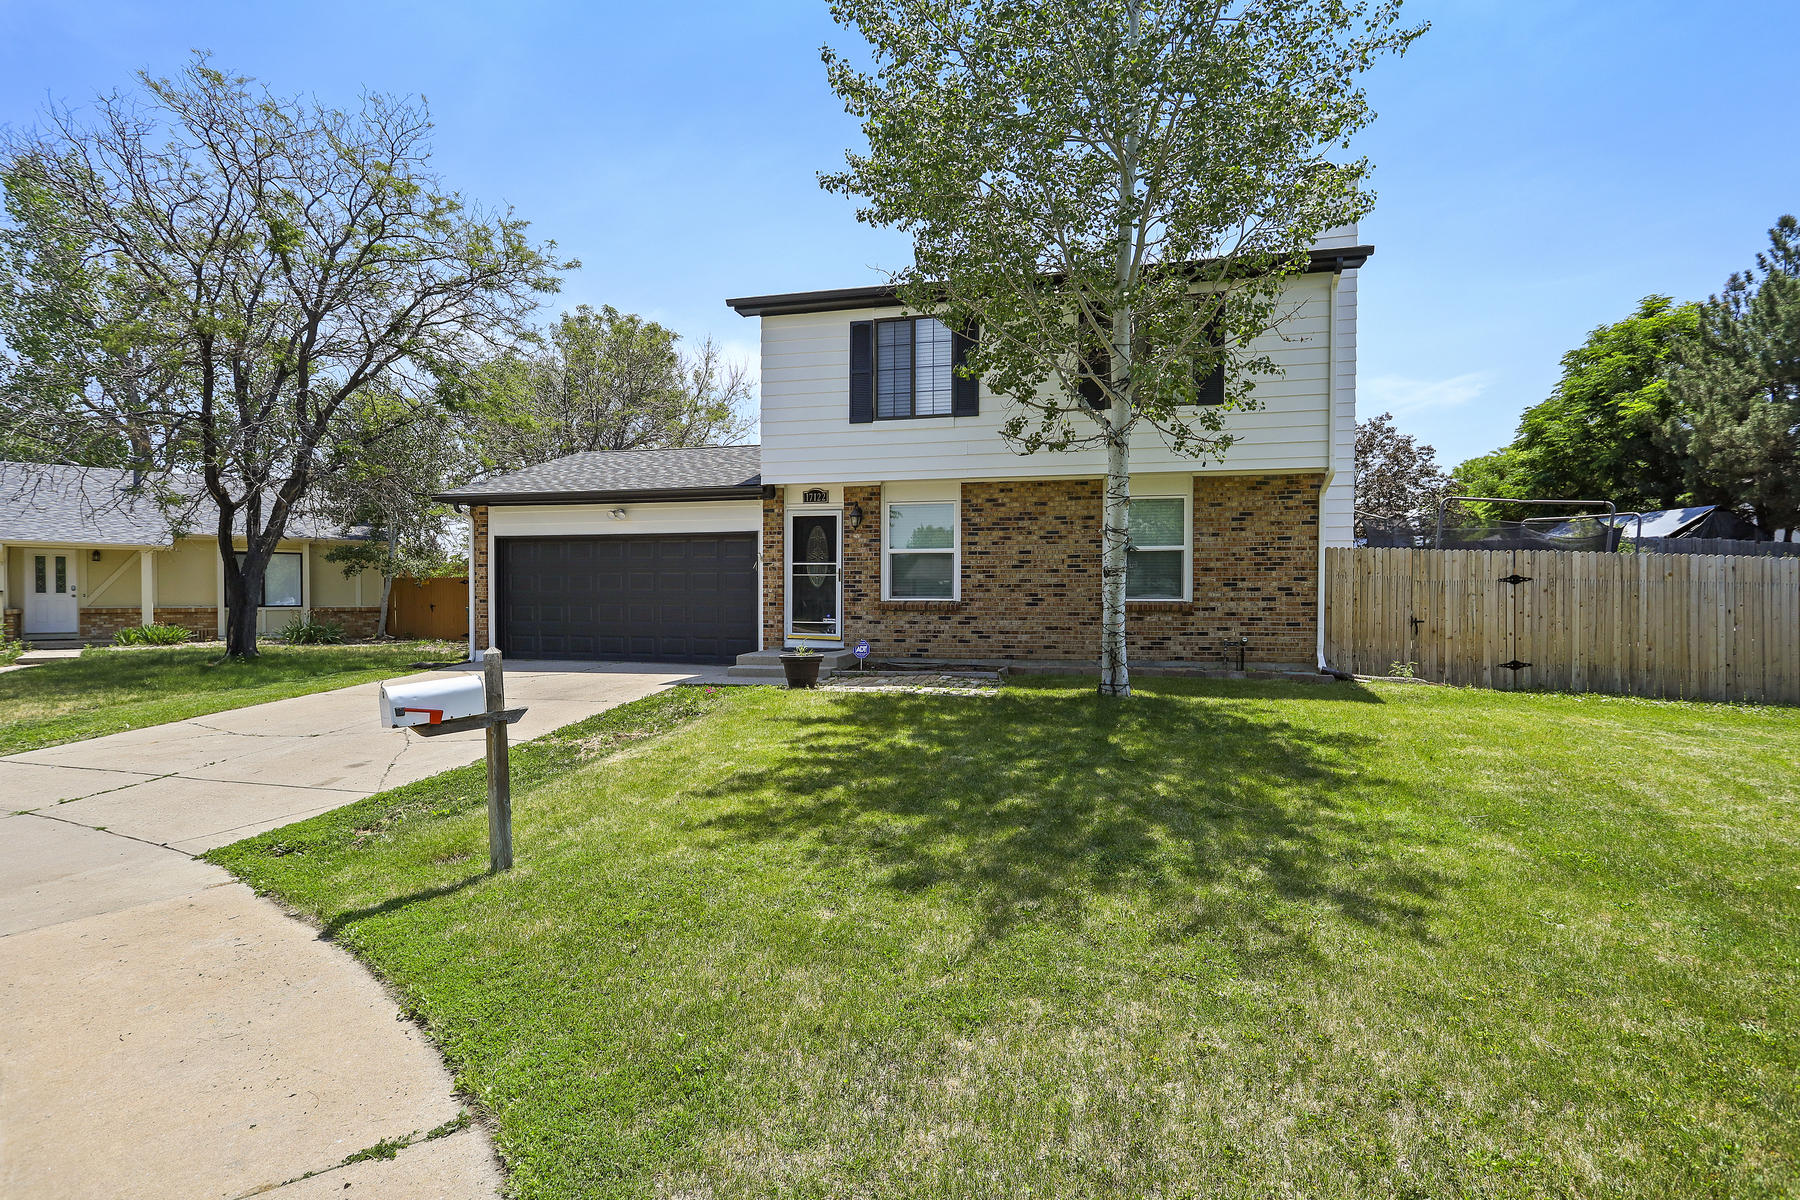 Single Family Homes для того Продажа на Completely REMODELED, BEAUTIFUL 2 story in Summer Valley 17122 E Kenyon Place, Aurora, Колорадо 80013 Соединенные Штаты